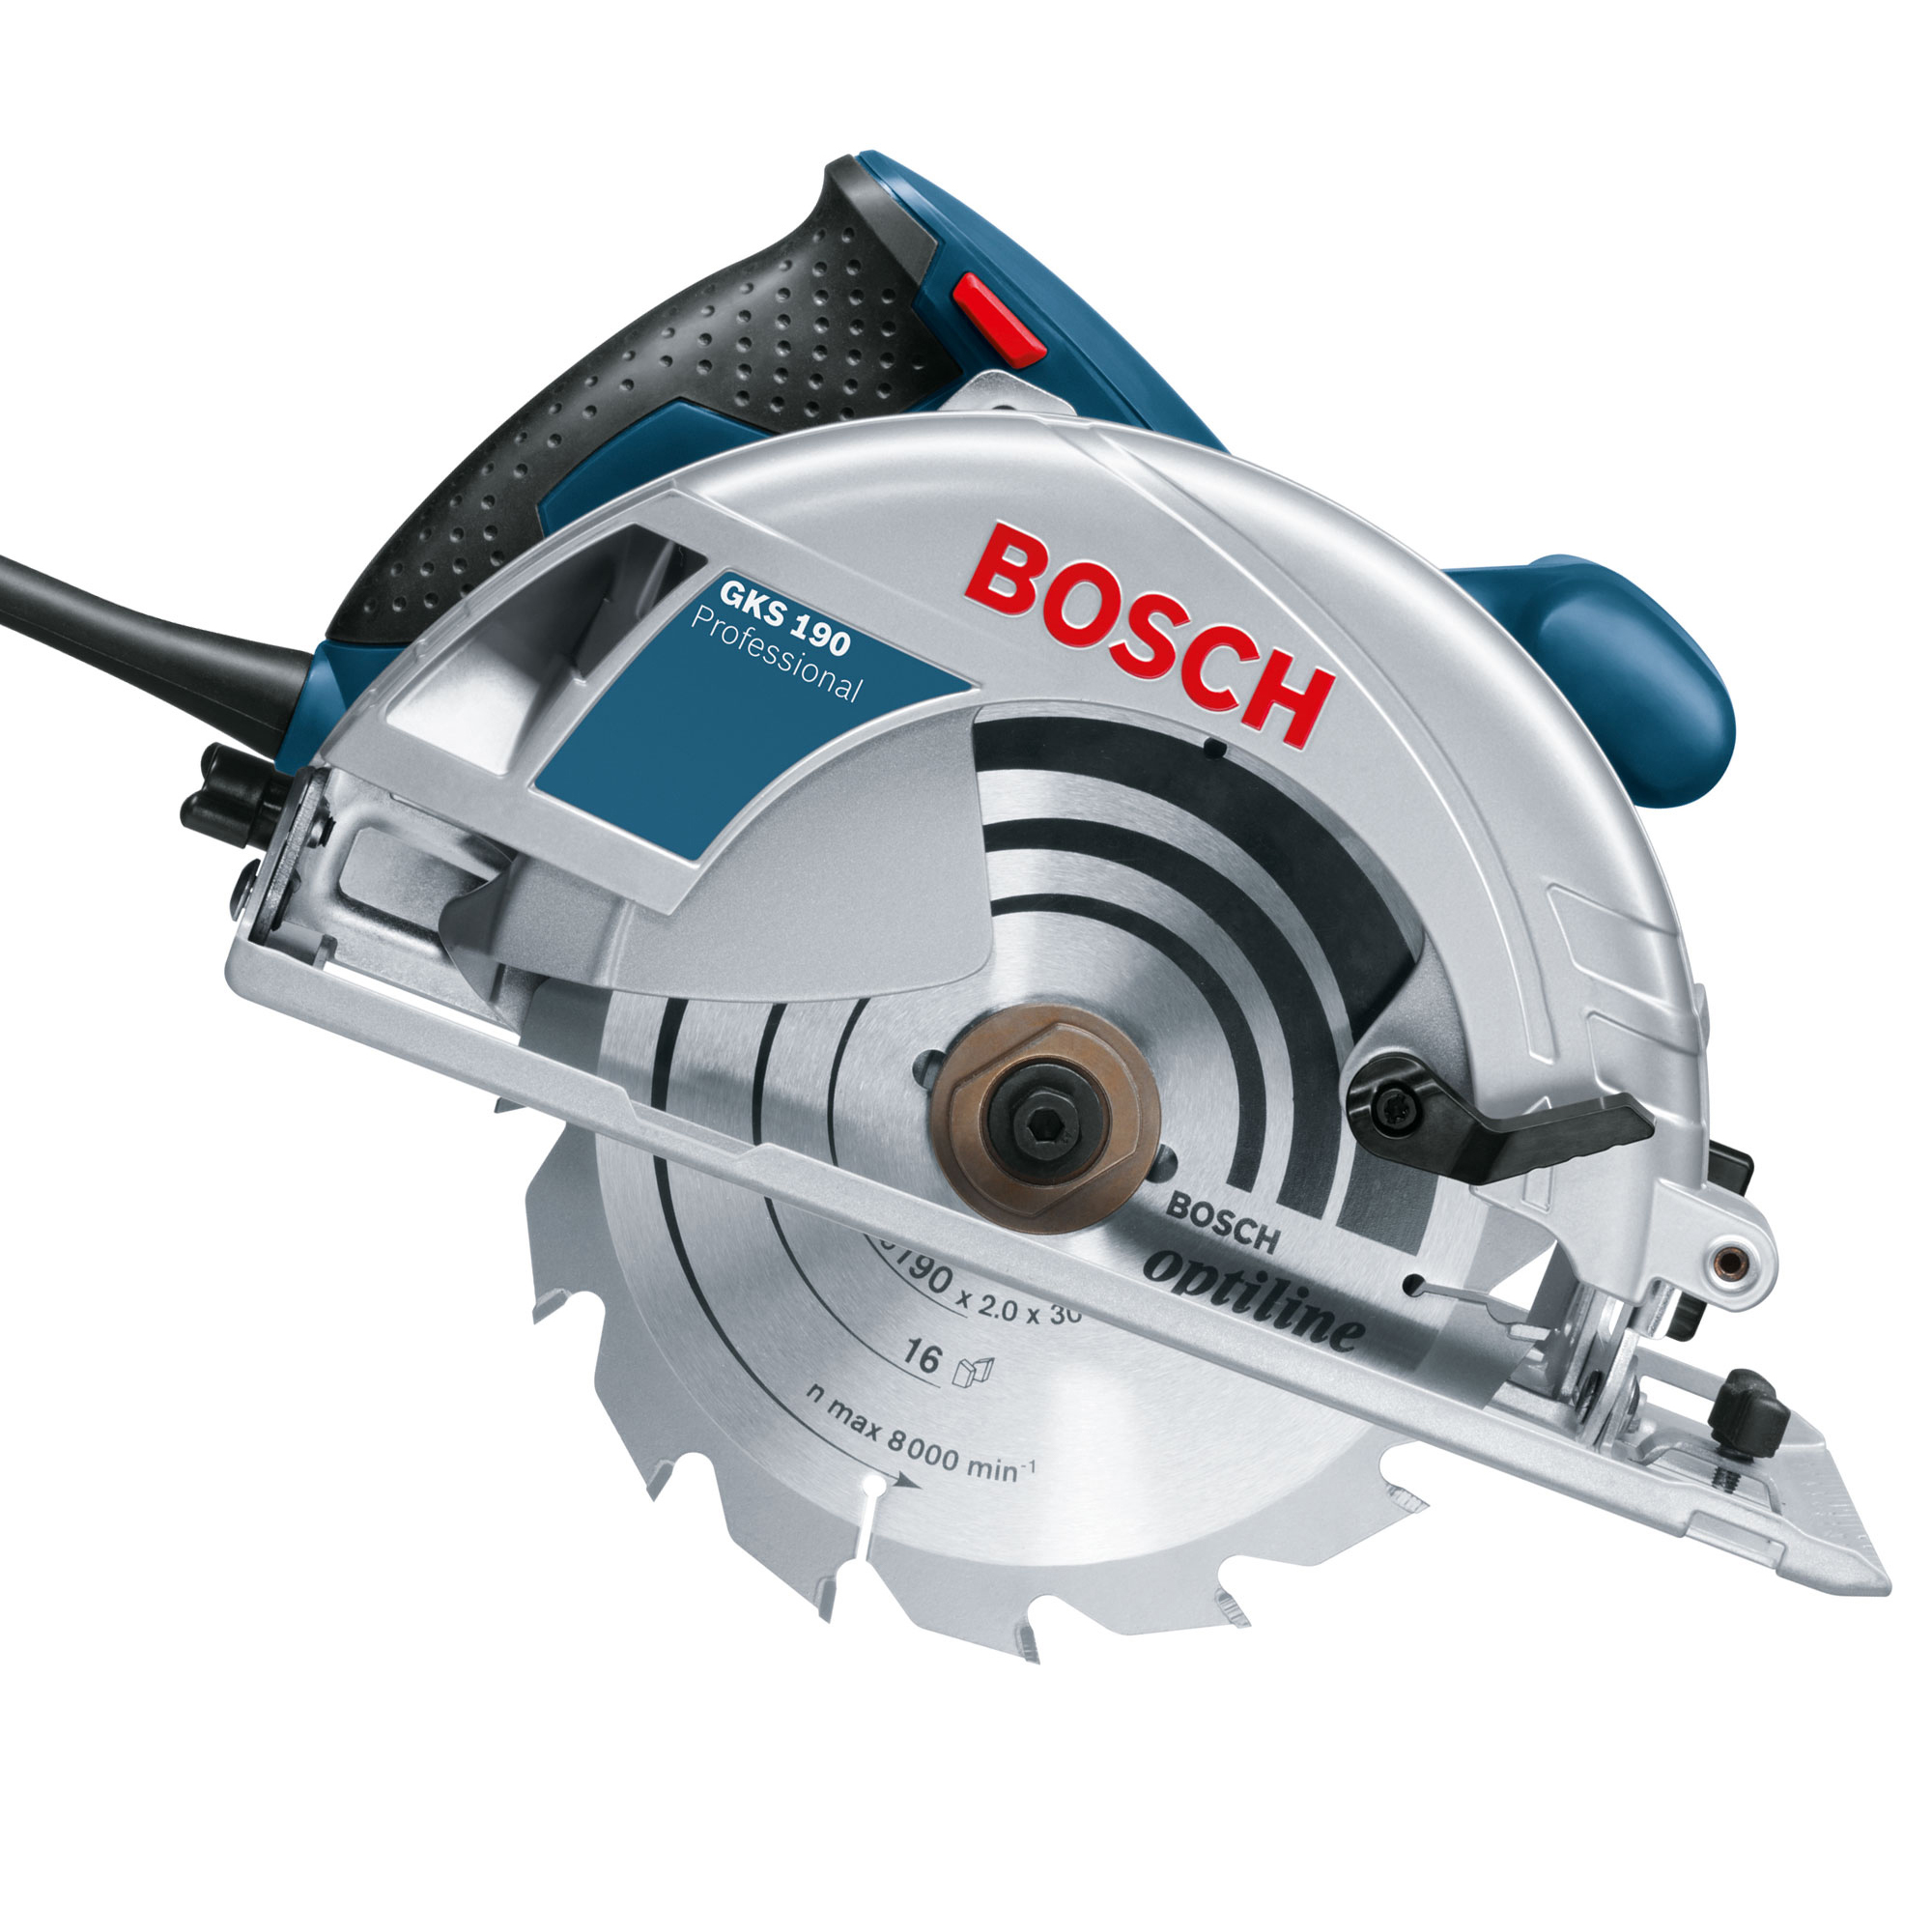 Bosch CCS180 Circular Saw Review - Tools in Action